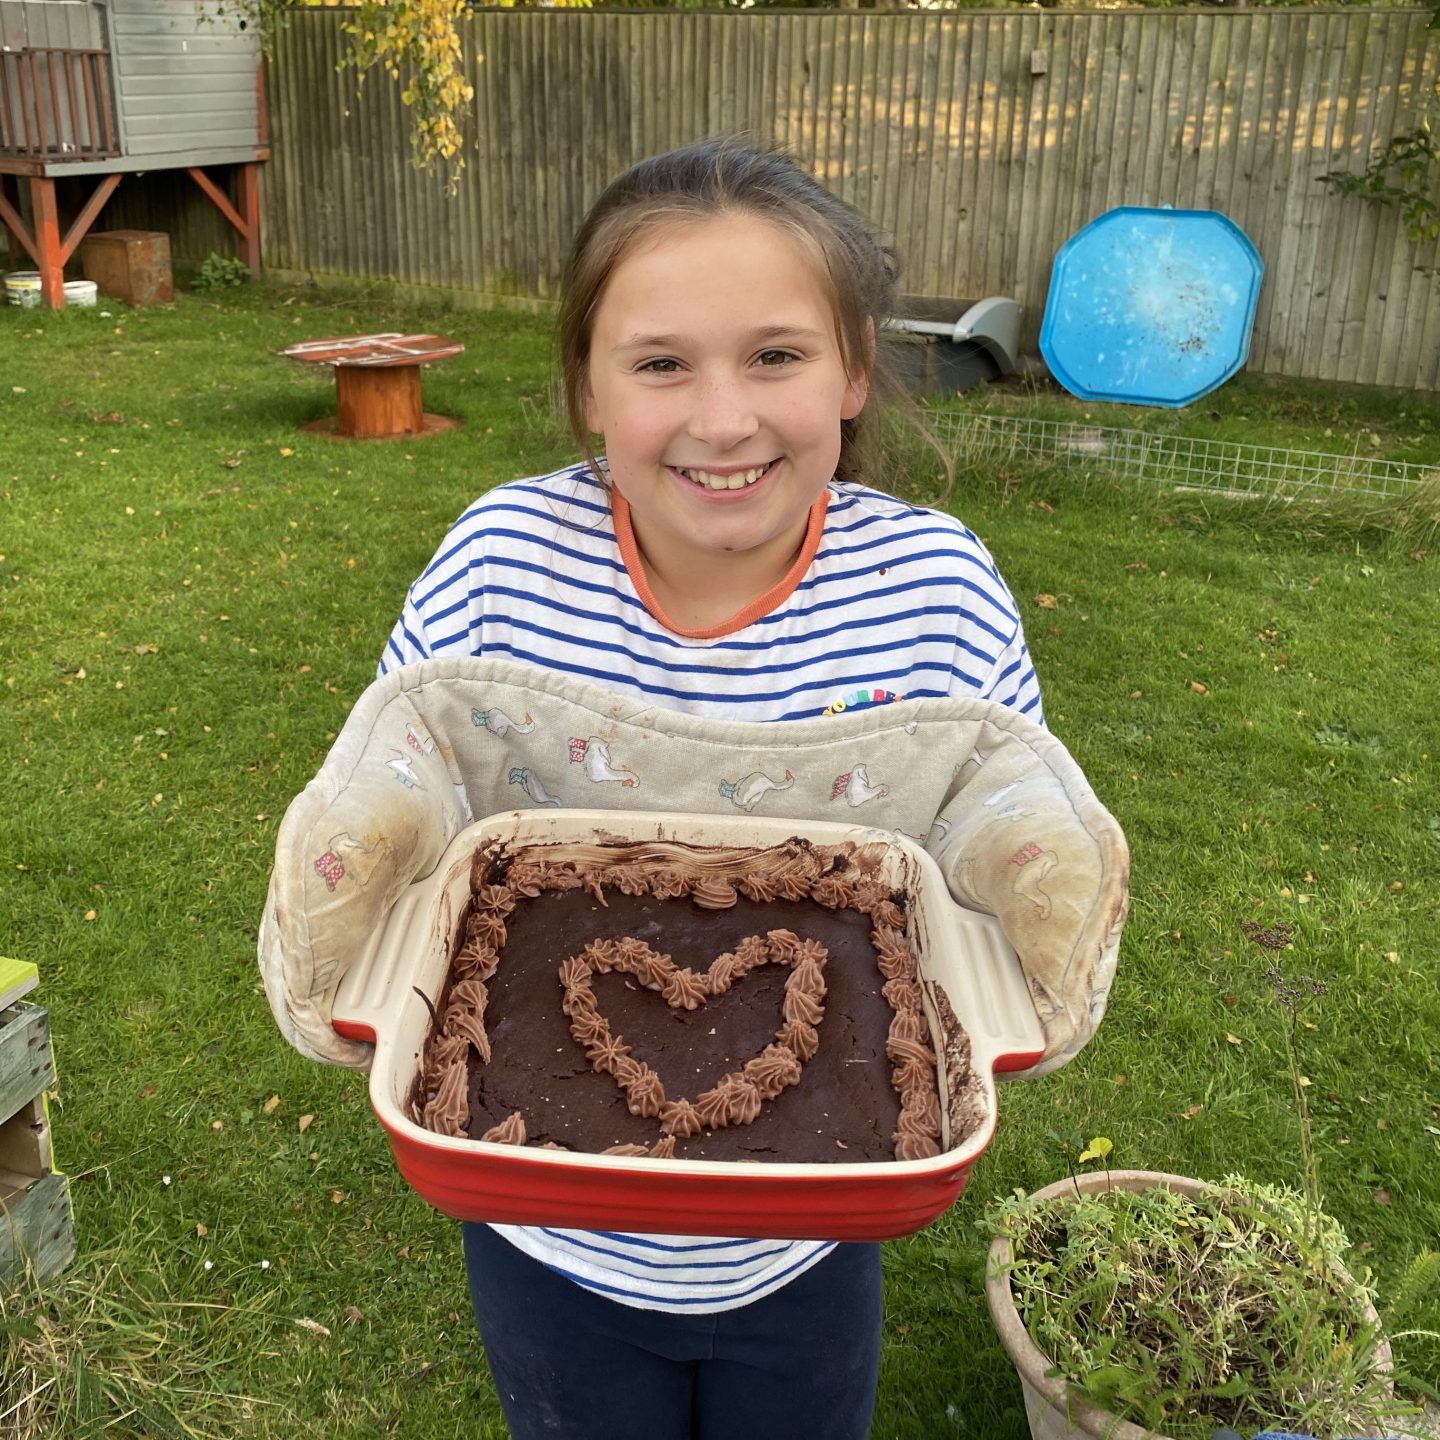 A girl holding up a cake